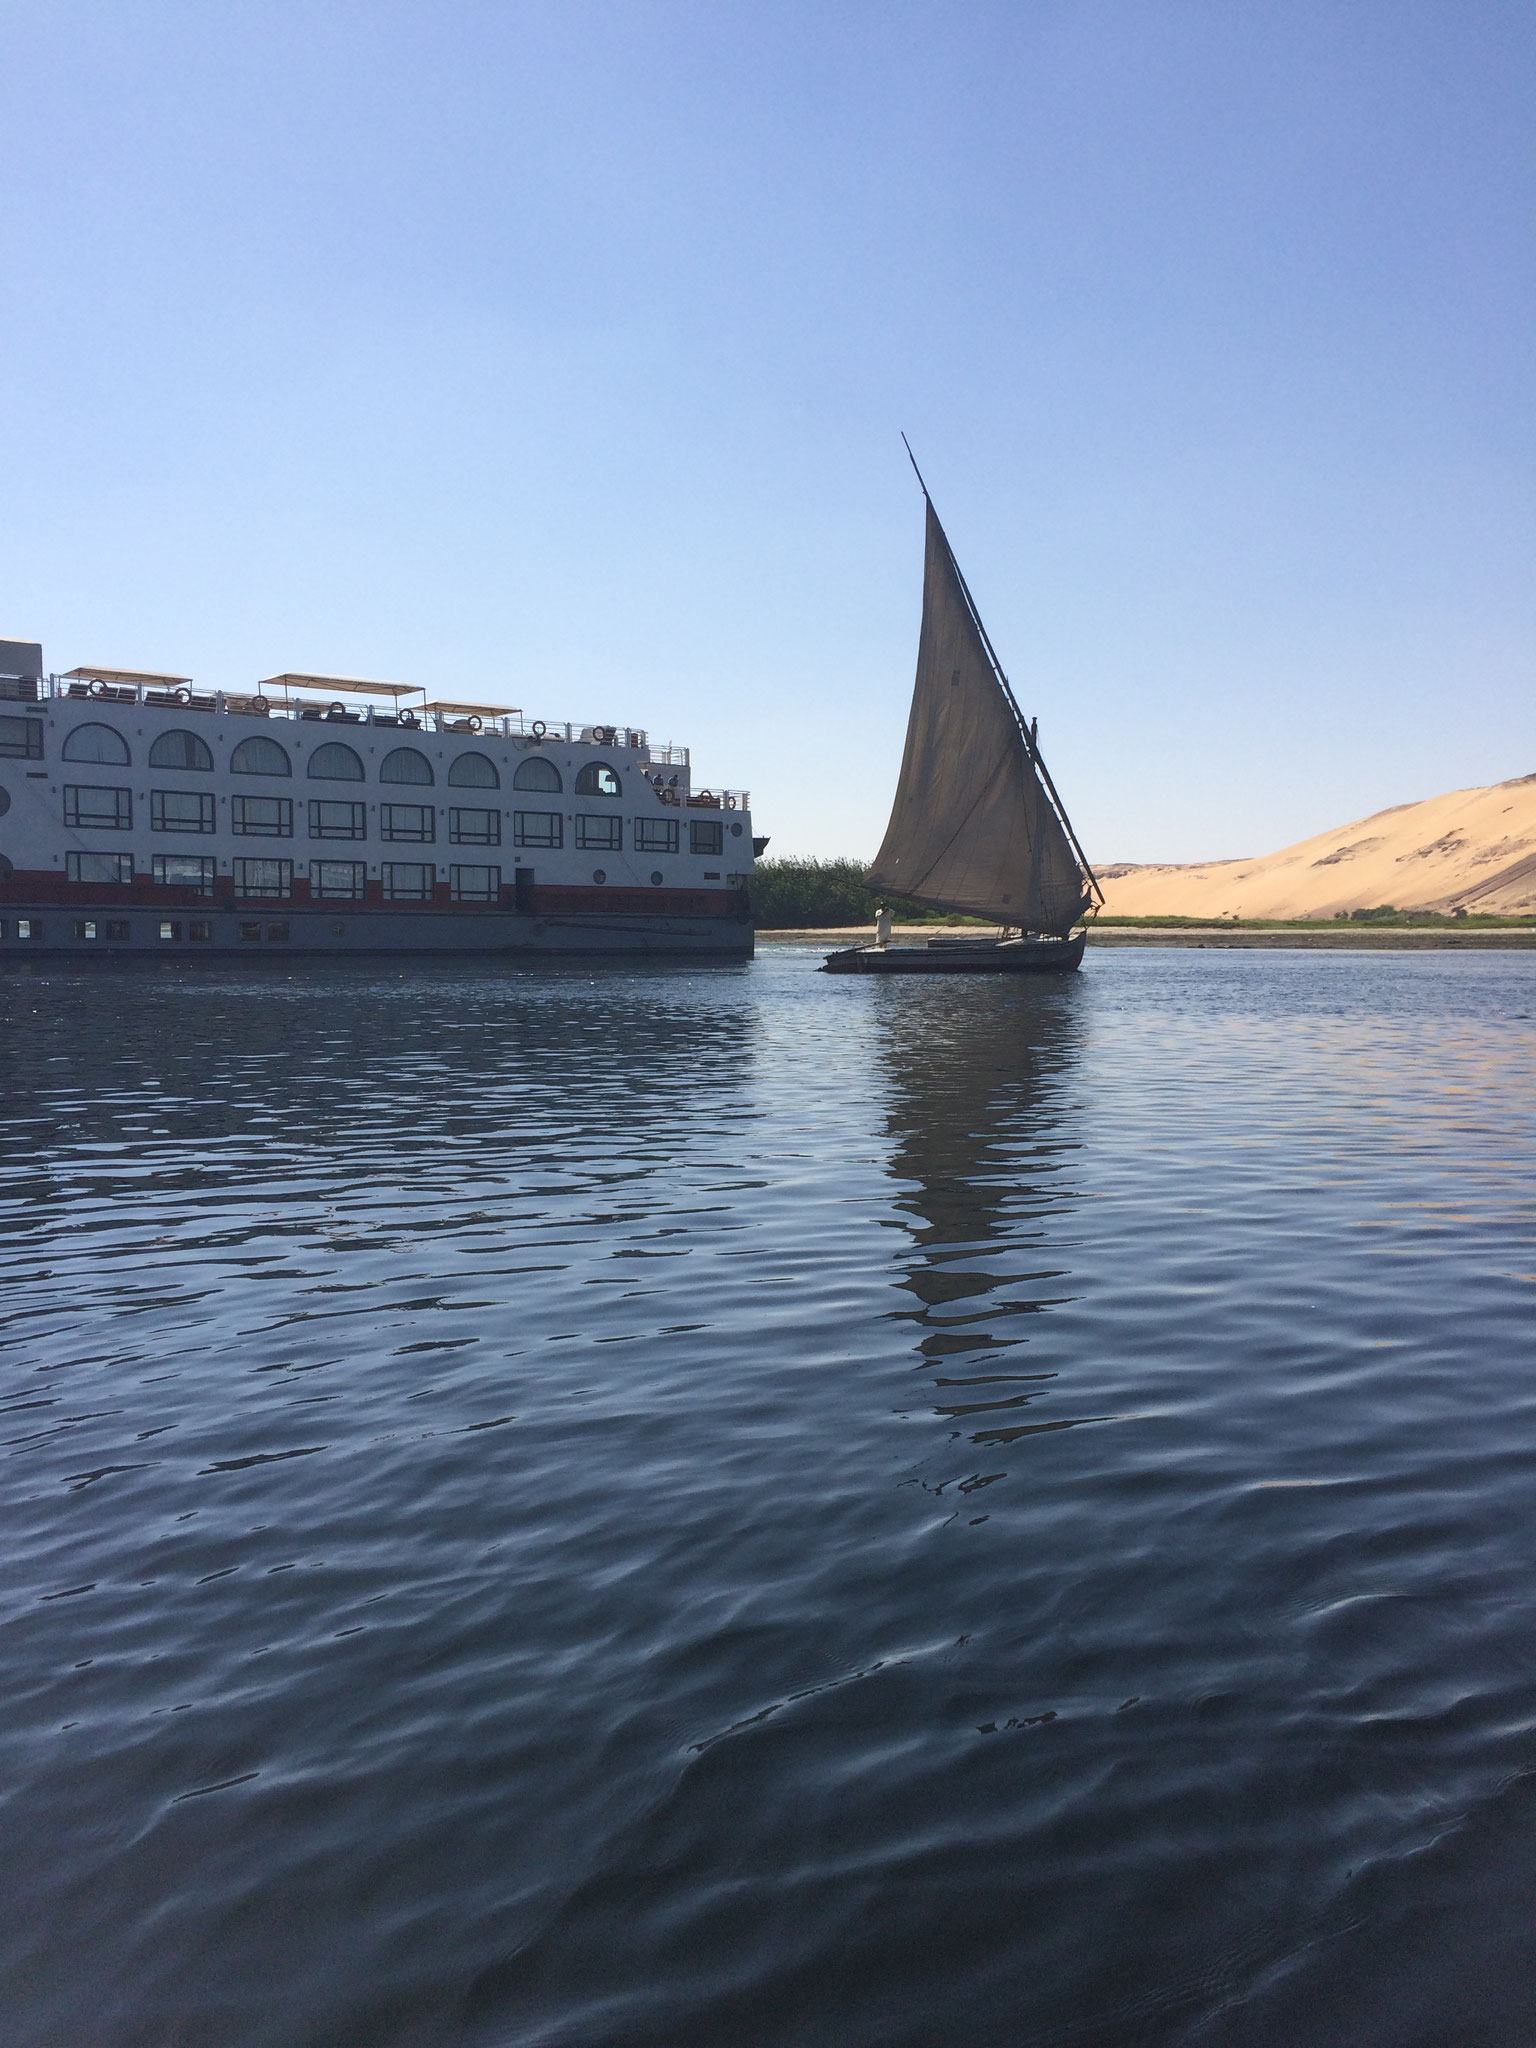 Felouca on the Nile